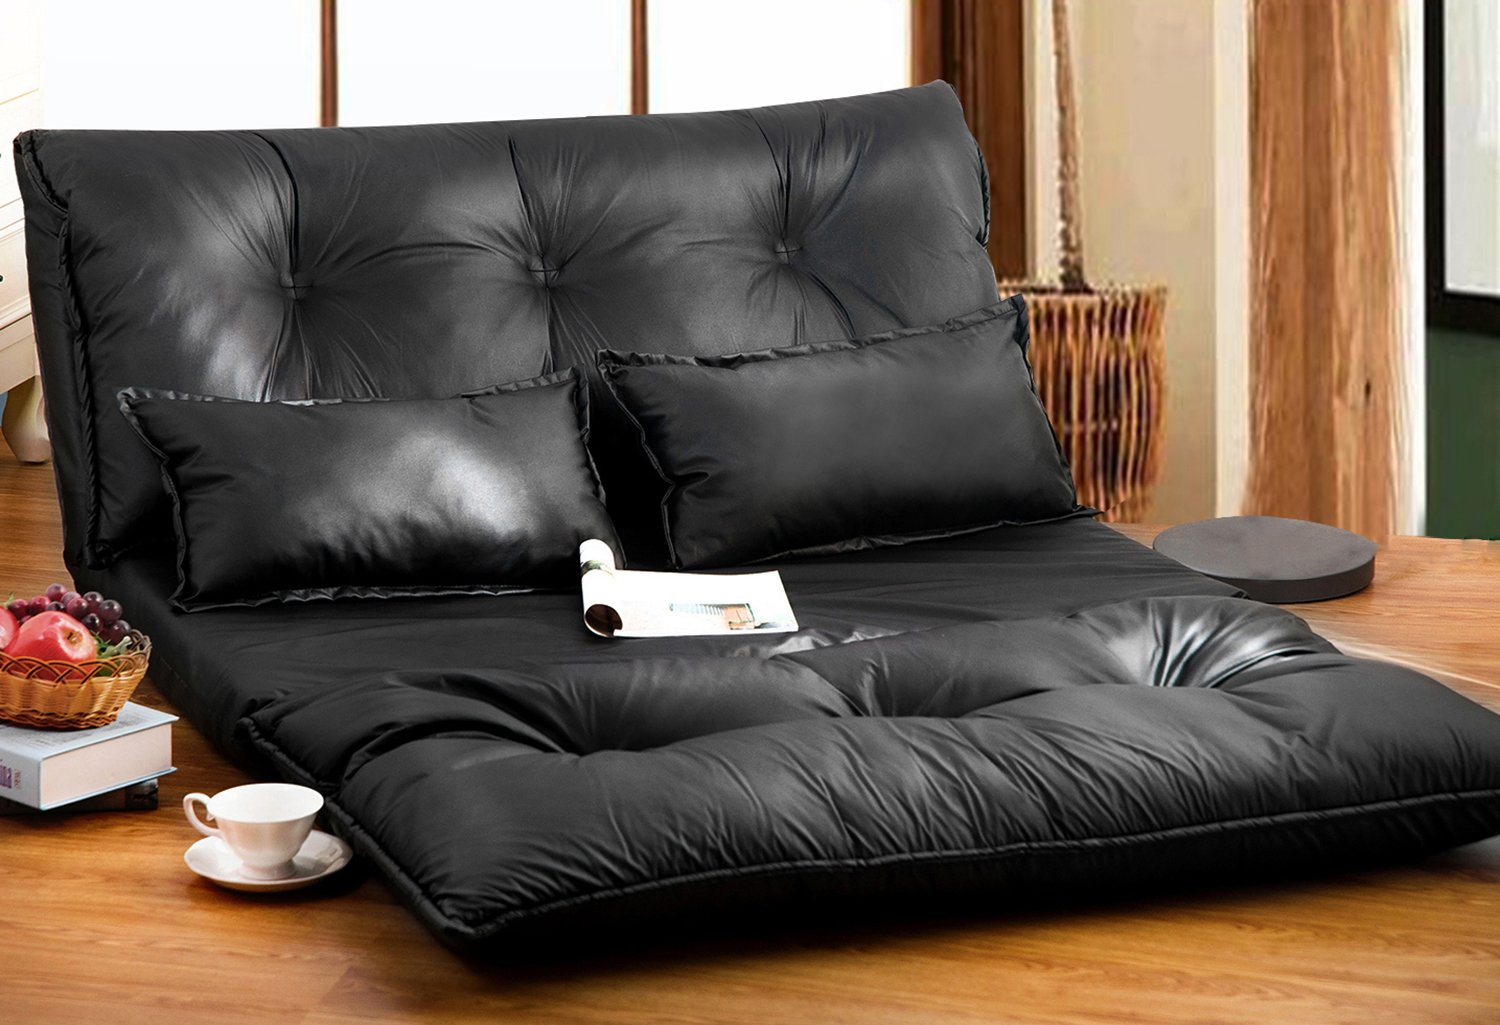 Amazon.com: Merax Pu Leather Foldable Modern Leisure Sofa Bed Video Gaming  Sofa With Two Pillows, Black: Home U0026 Kitchen